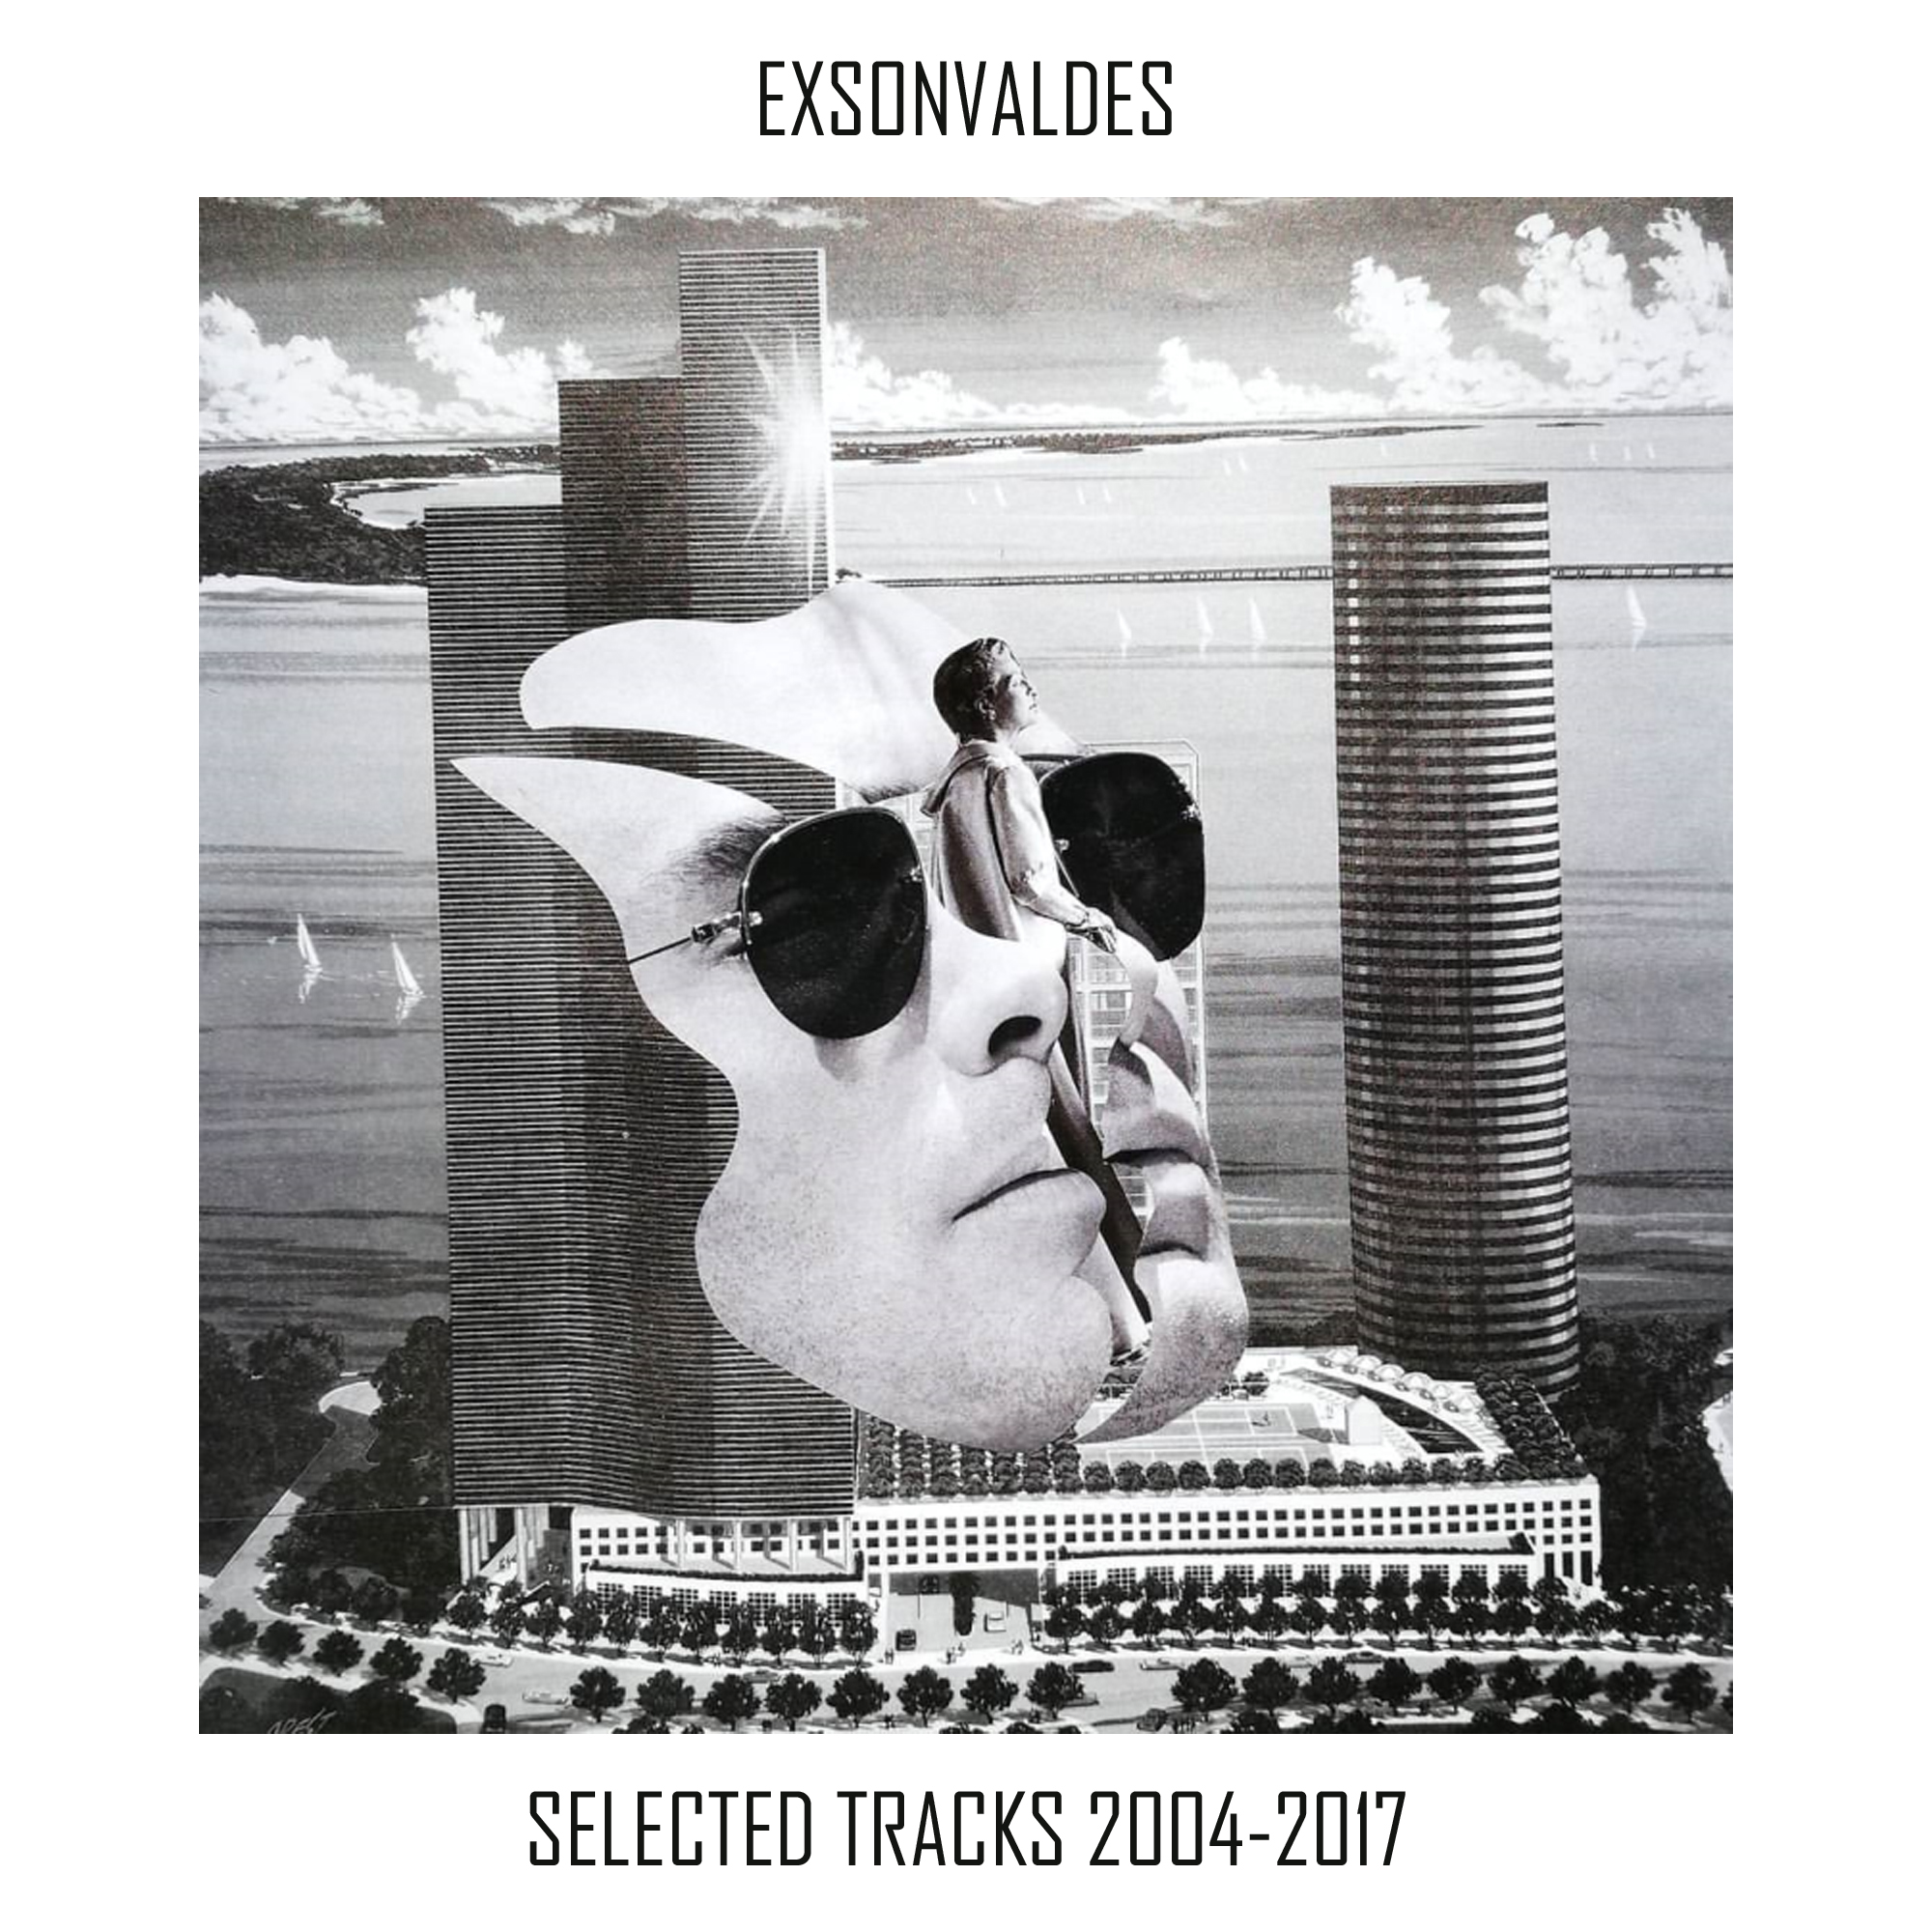 Exsonvaldes - Selected Tracks